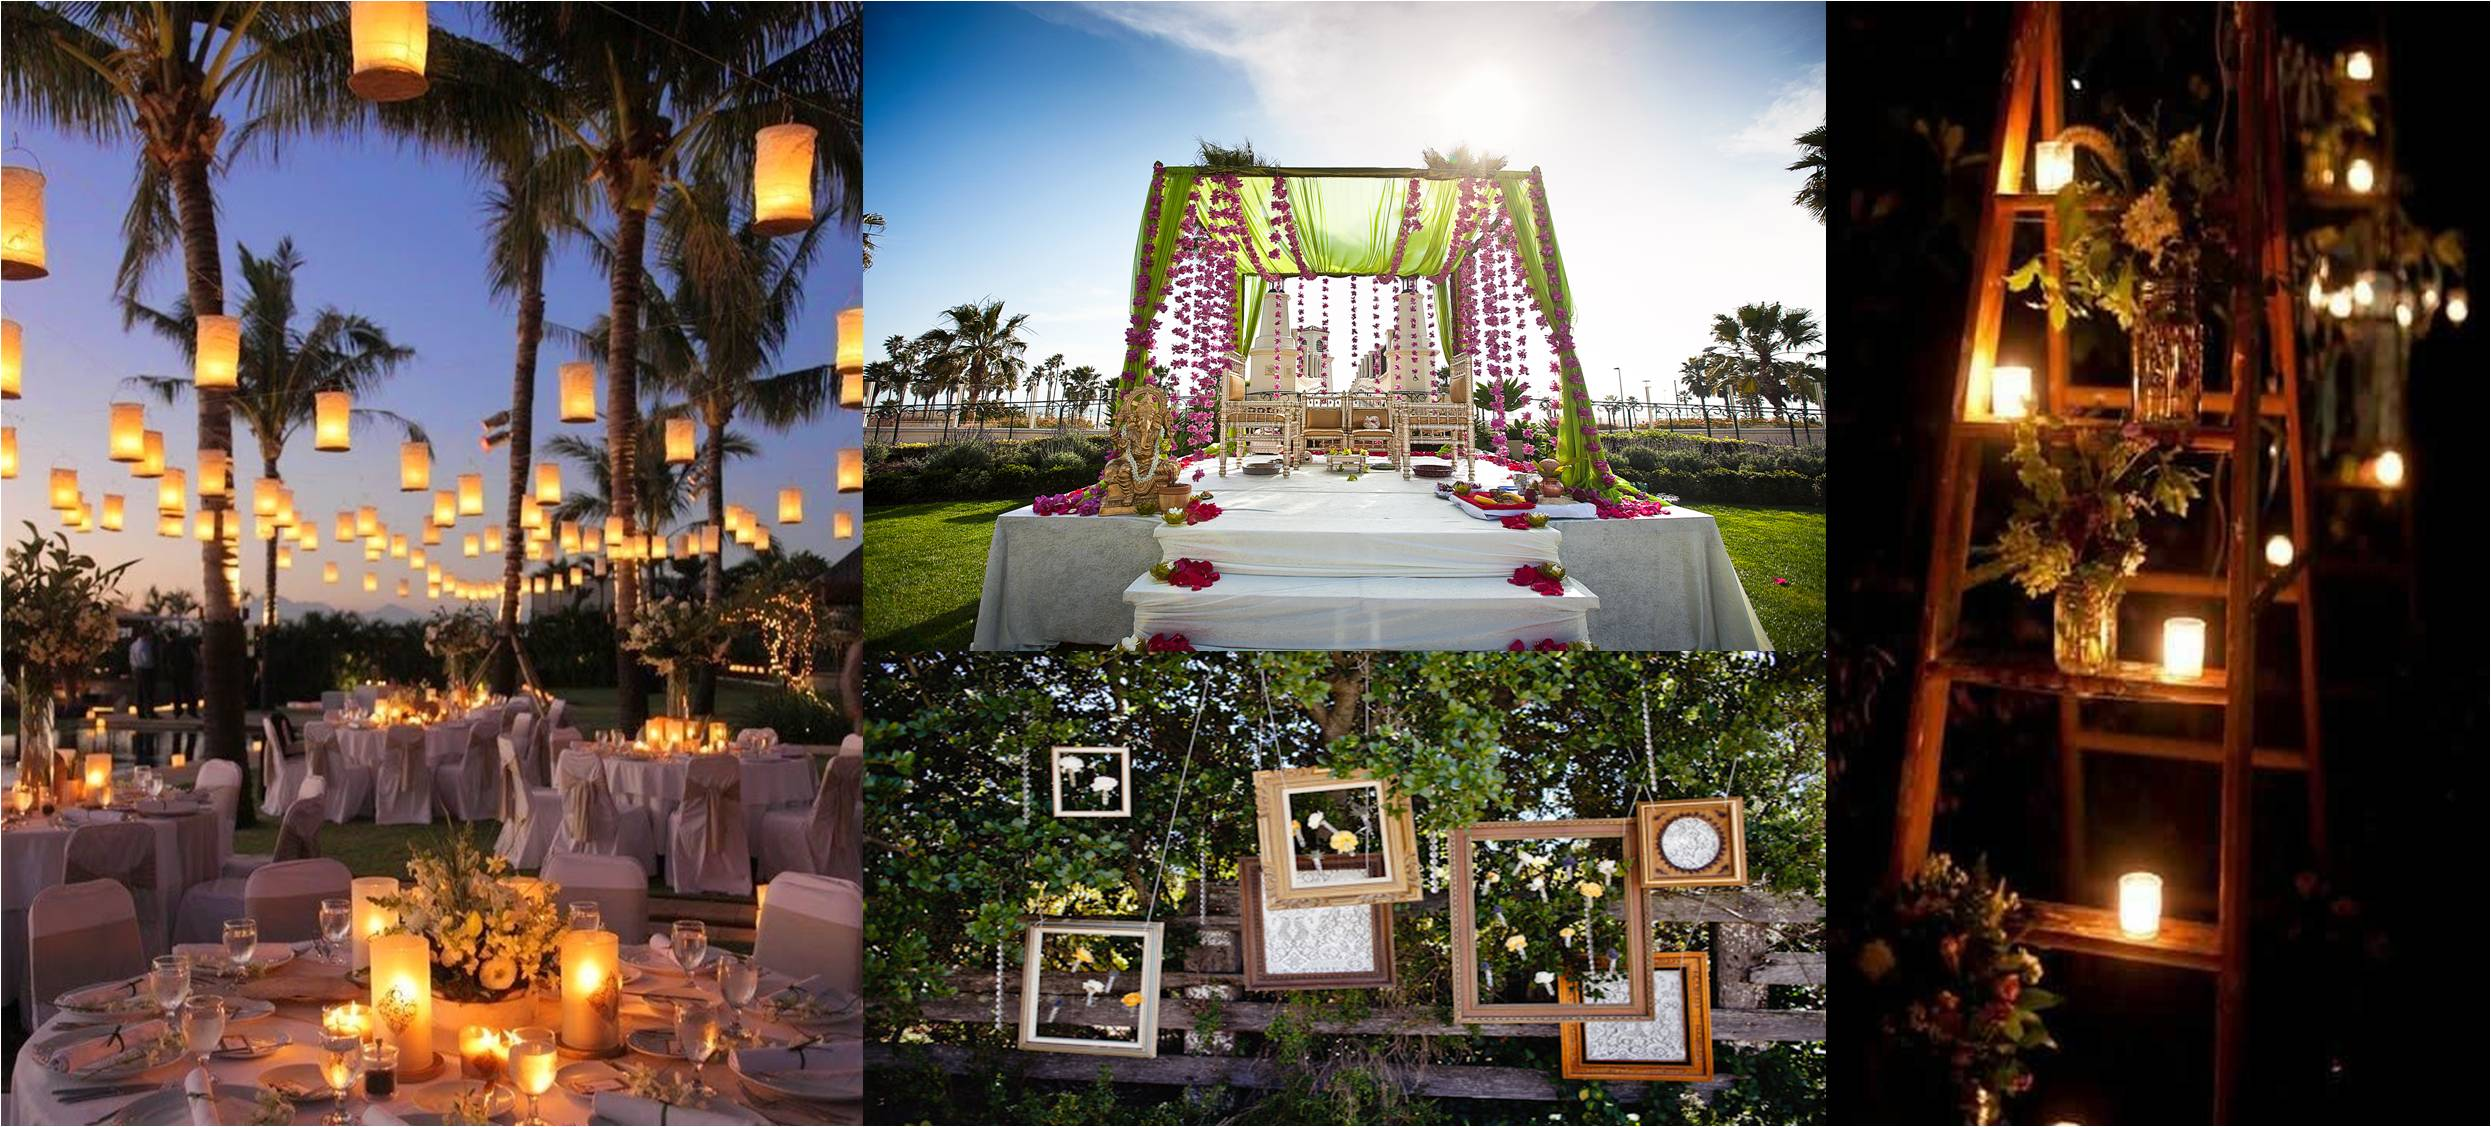 Wedding decor theme theme wedding planner new delhi the evergreen garden wedding decor theme junglespirit Gallery